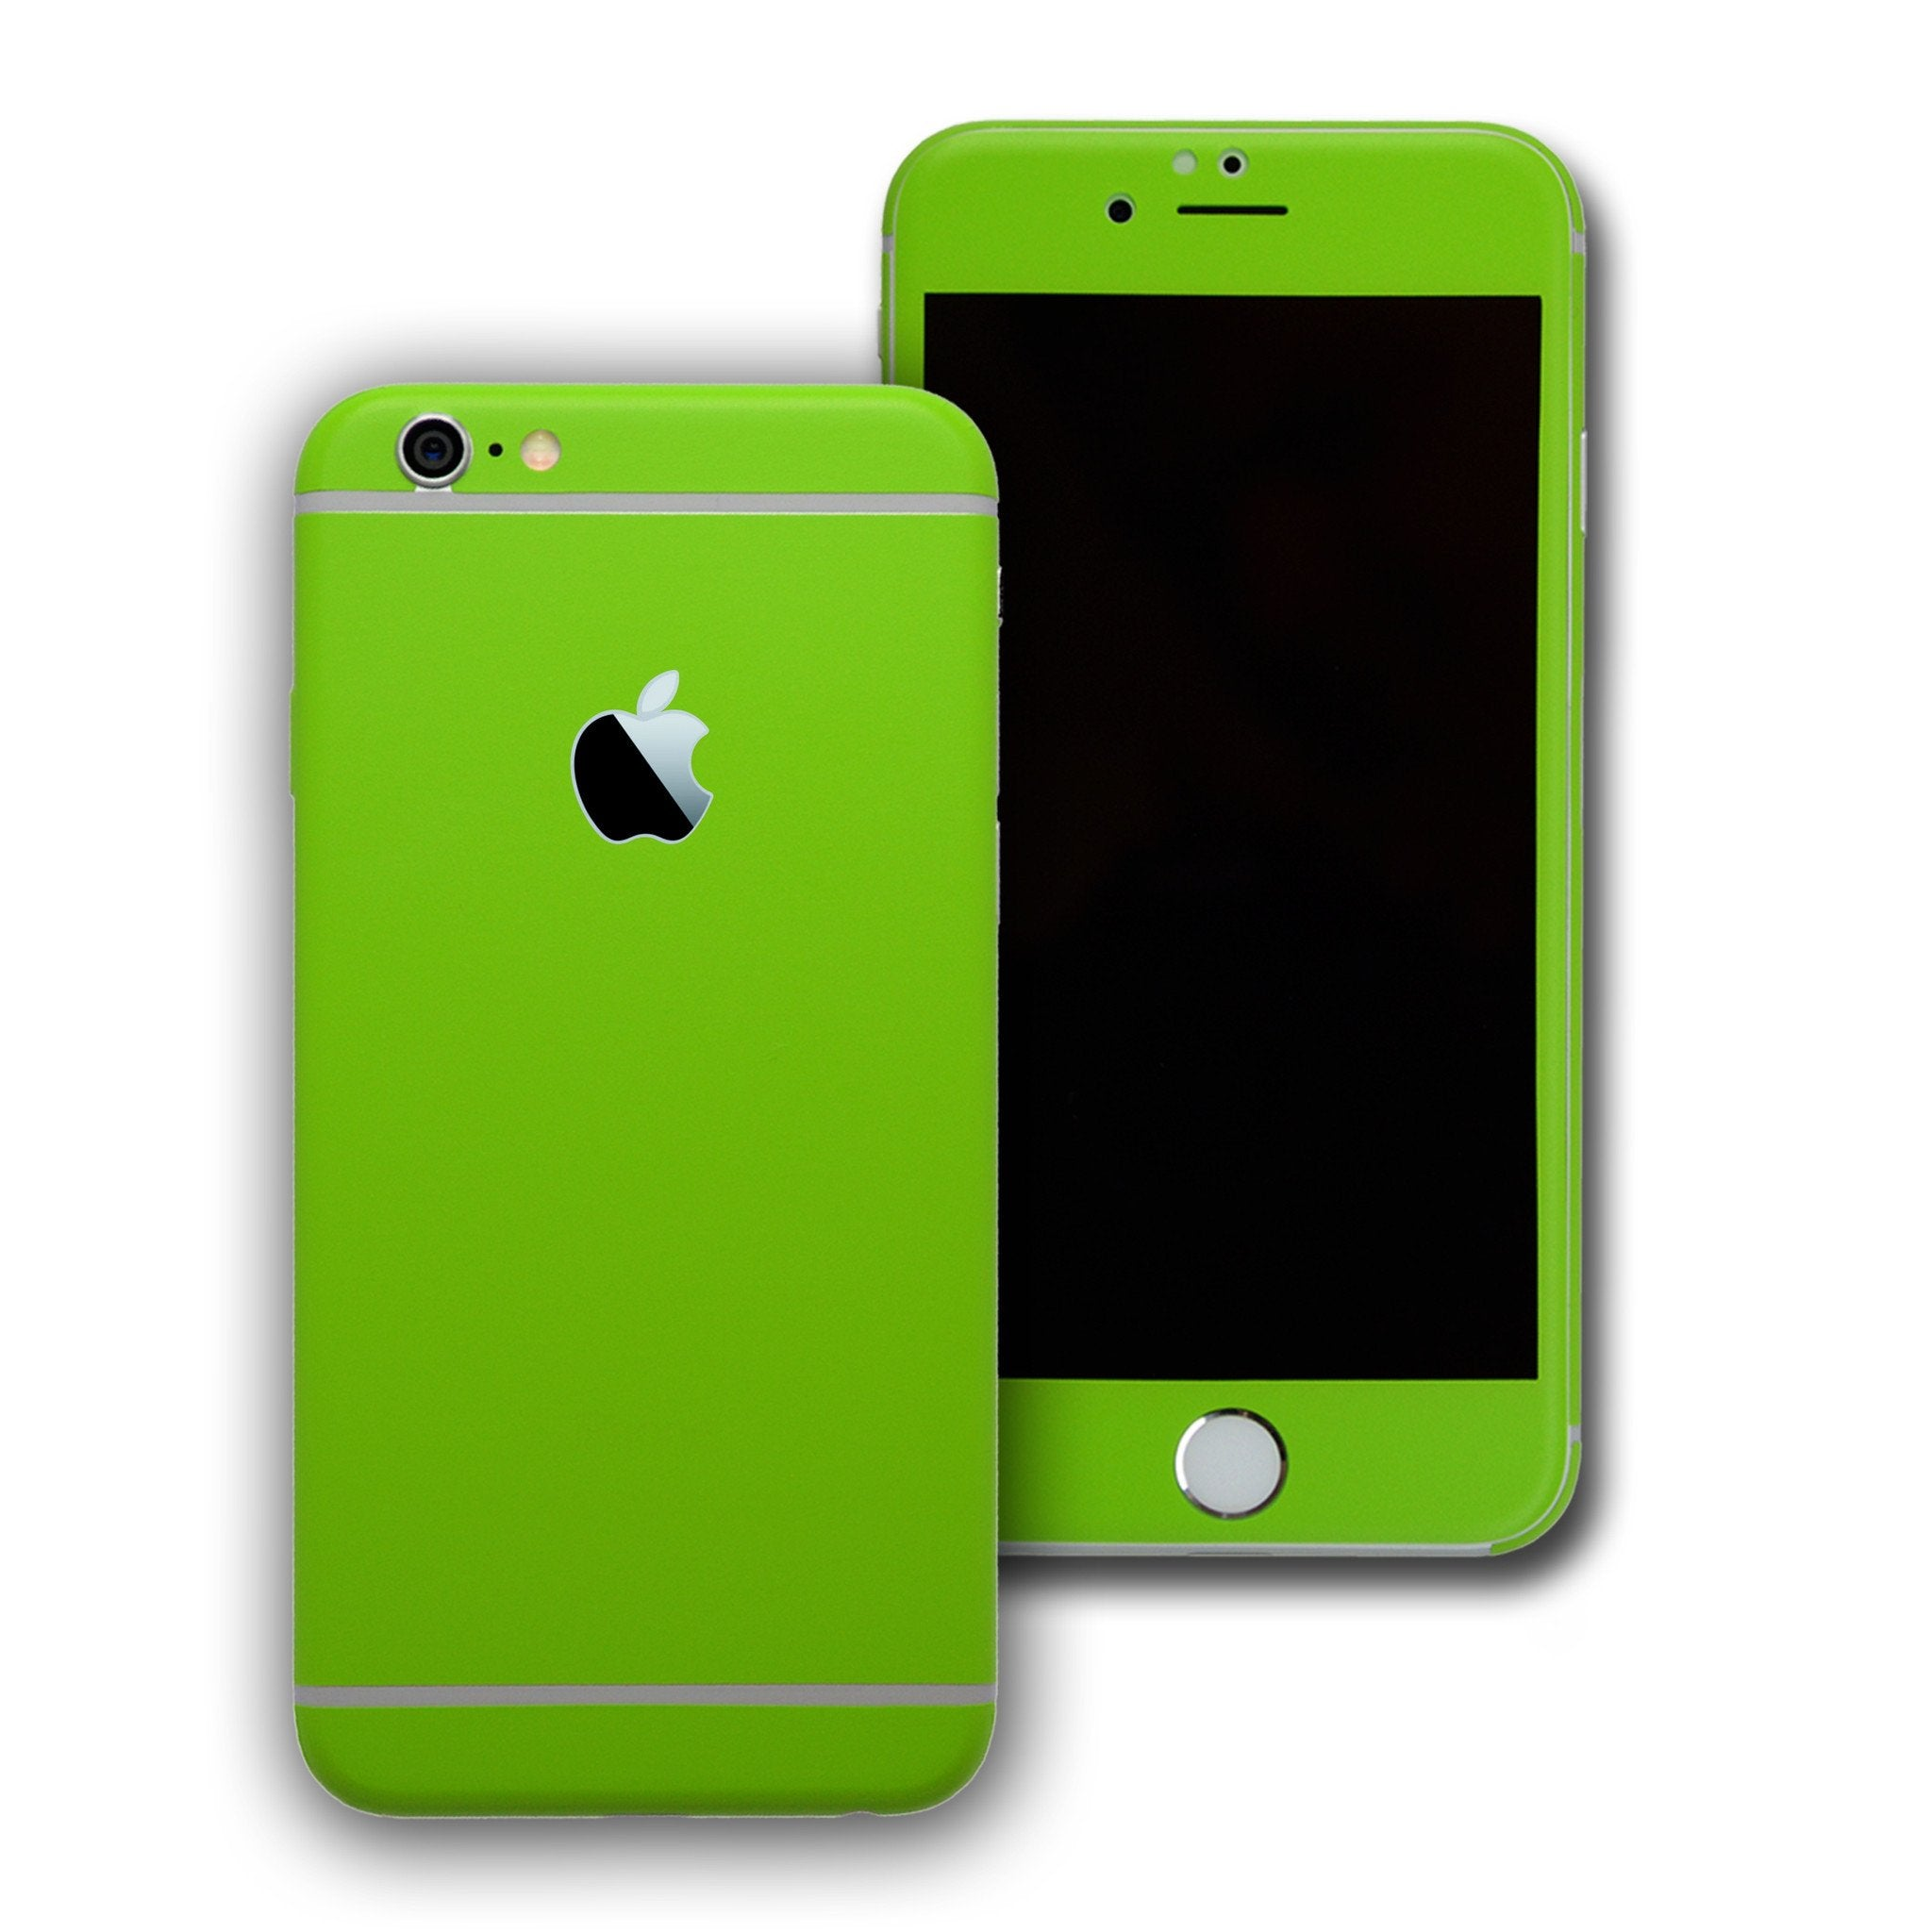 iPhone 6S Green Matt Skin Wrap Sticker Cover Decal Protector by EasySkinz